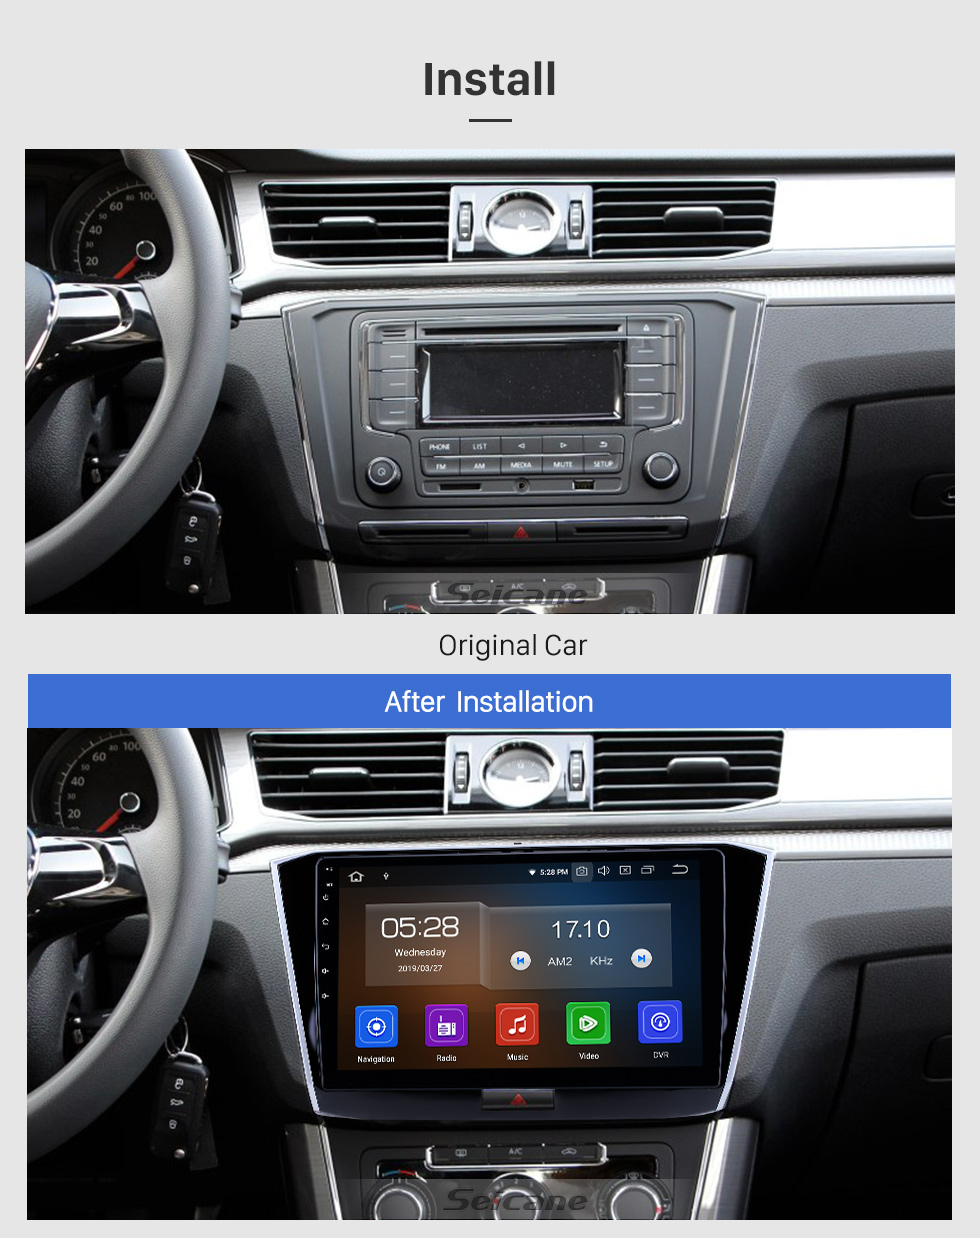 Seicane 10.1 inch 2016-2018 VW Volkswagen Passat Android 9.0 GPS Navigation Radio Bluetooth HD Touchscreen AUX USB Carplay support Mirror Link